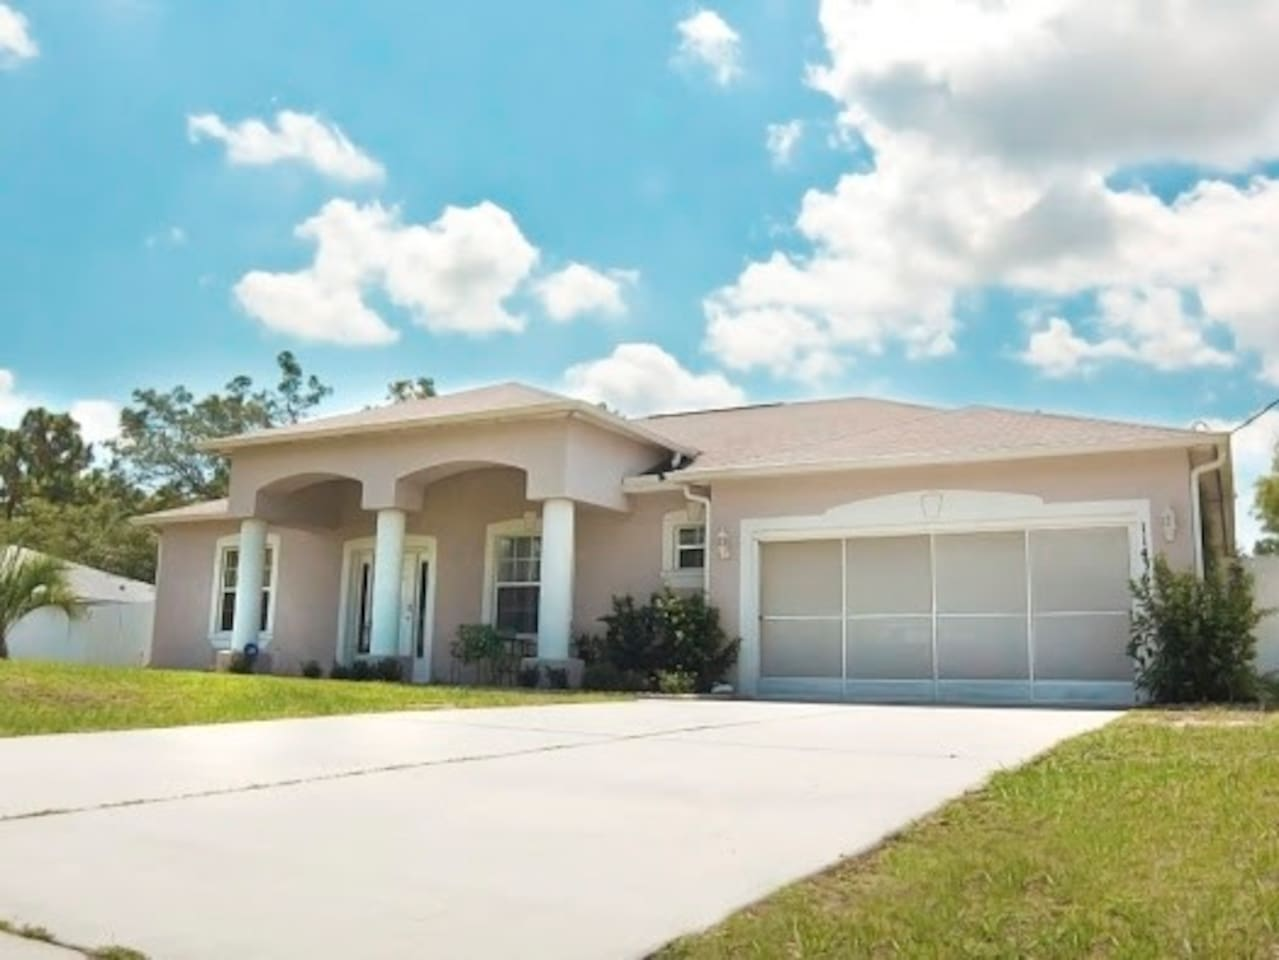 Welcome to your lovely home away from home.  Right around the corner is Publix, Walgreens, Pizza Hut, Bowling alley, 3.5 miles from Buccaneer Bay/Weeki Wachee Springs, and Walmart, Bonefish Grill amongst other pleasurable dining restraunts.